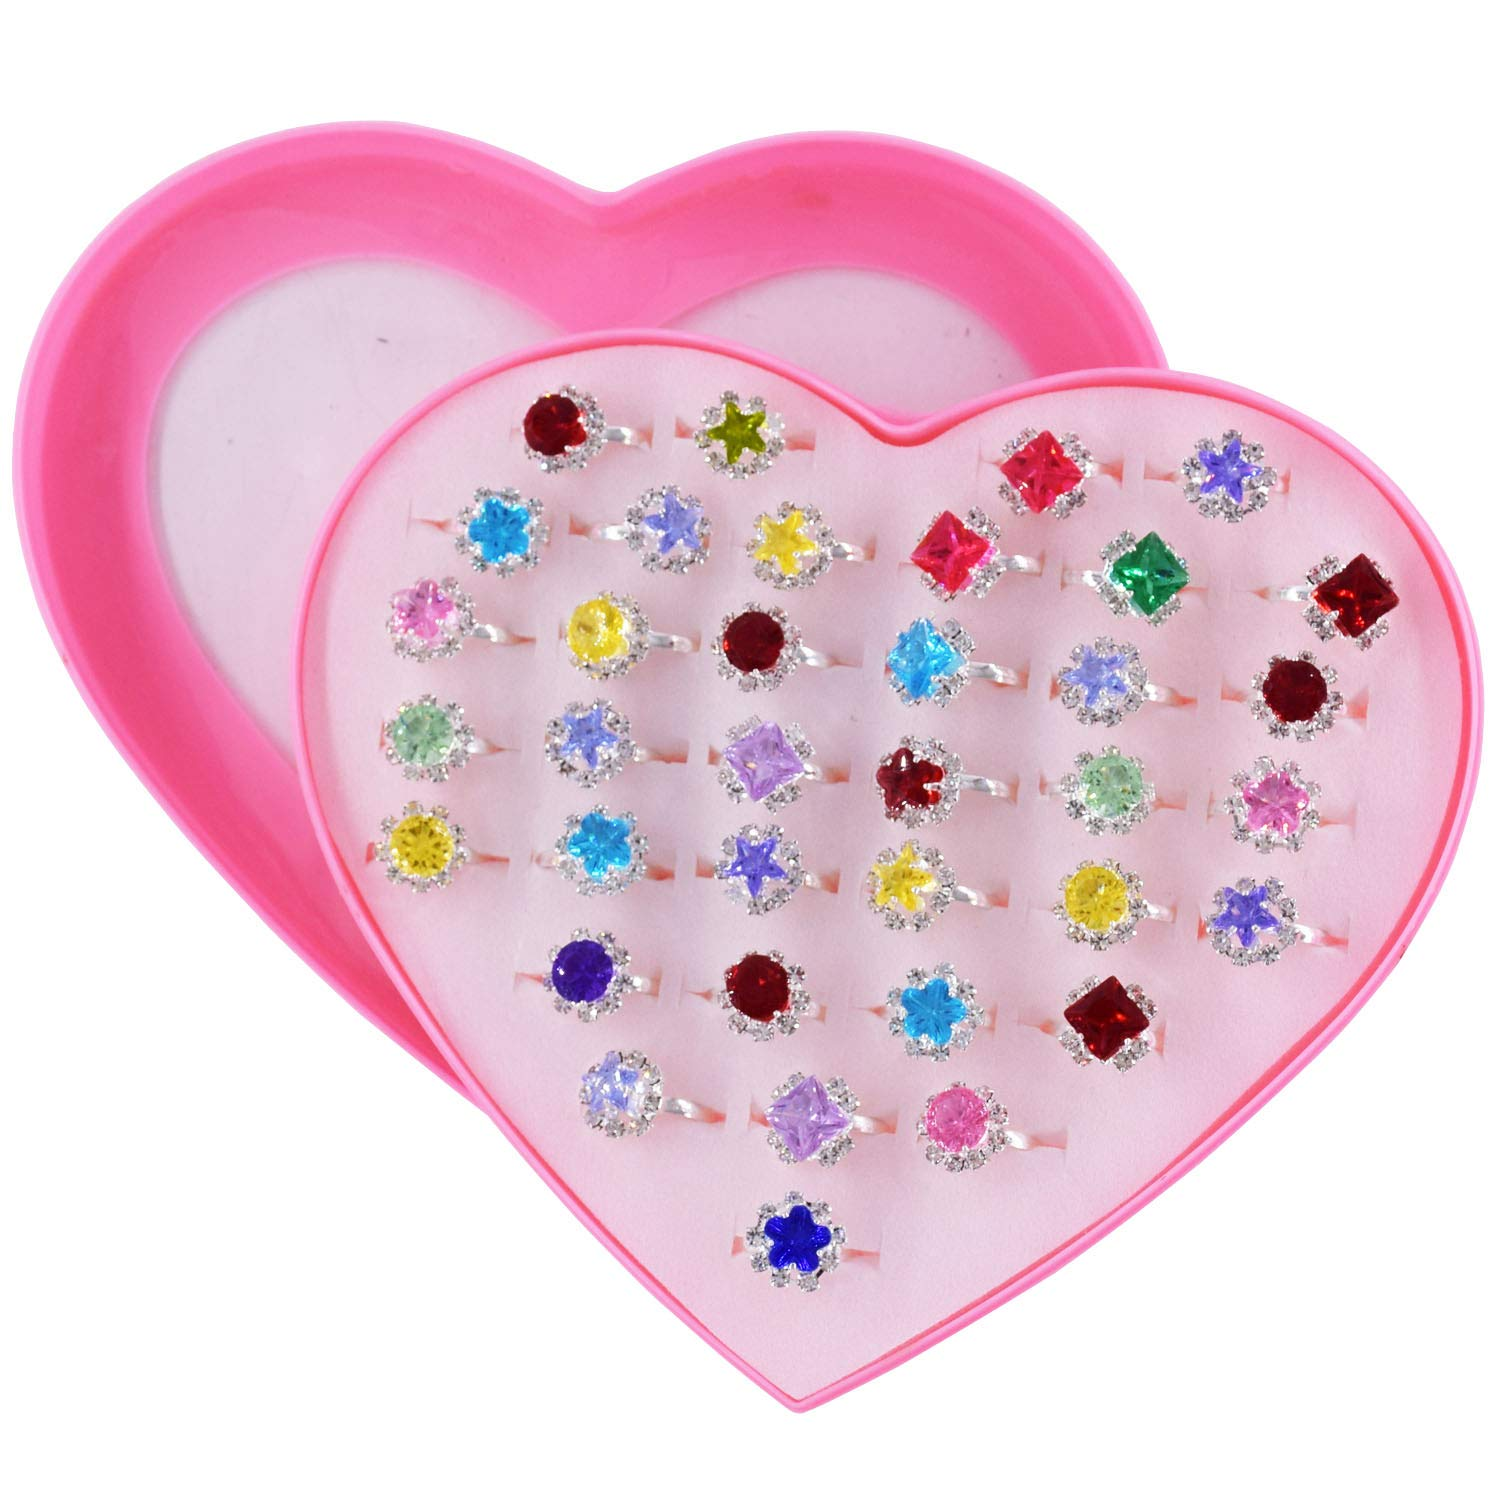 SUNMALL 36 pcs Little Girl Adjustable Rhinestone Gem Rings in Box, Children Kids Jewelry Rings Set with Heart Shape Display Case, Girl Pretend Play and Dress up Rings for Kids by SUNMALL